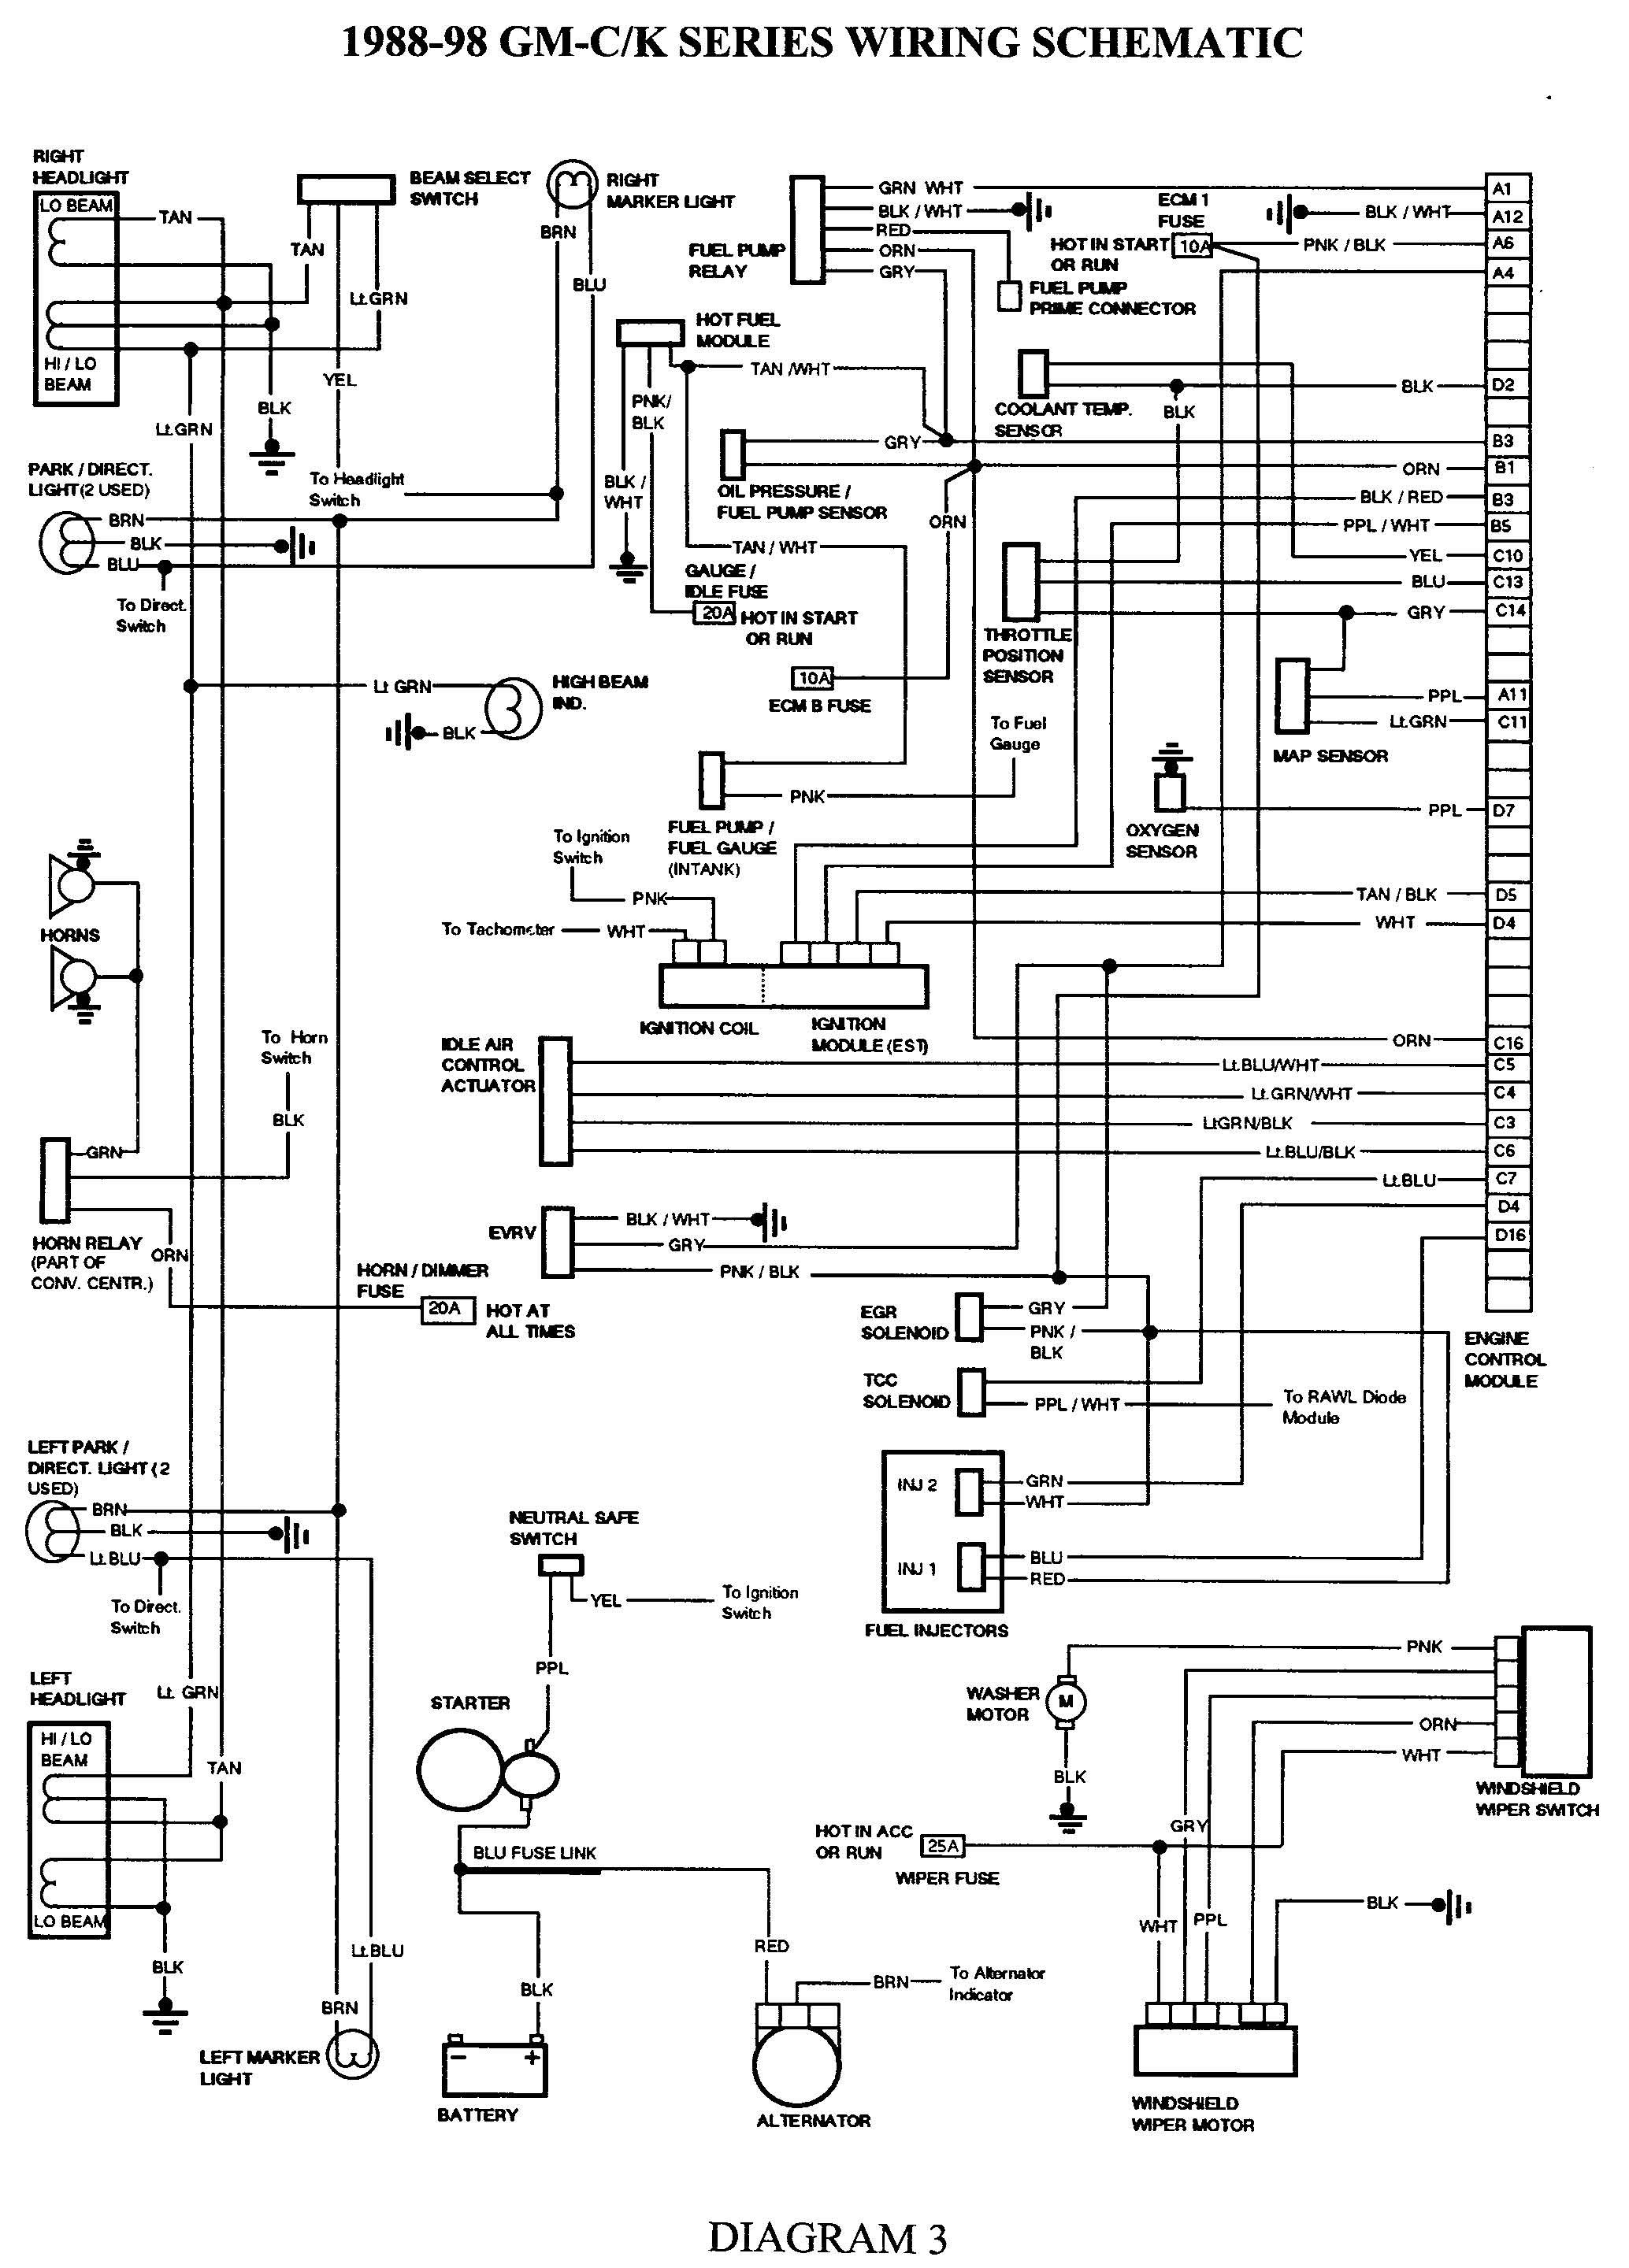 gmc truck wiring diagrams on gm wiring harness diagram 88 98 kc 200 chevy 3500 transmission wiring diagram [ 2068 x 2880 Pixel ]